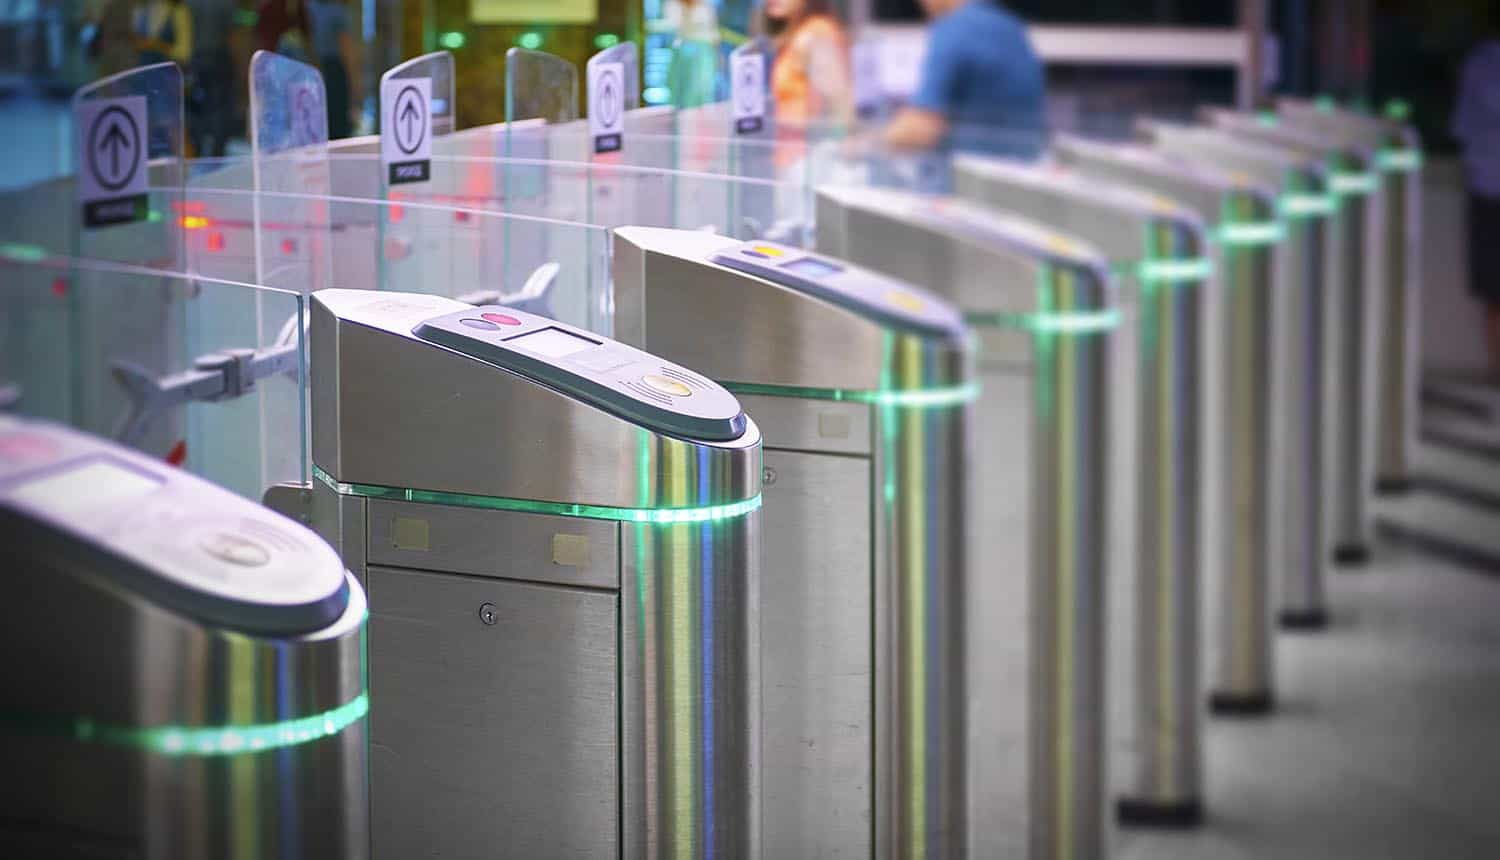 View on Moscow Metro station ticket barriers with green light for entry showing facial recognition payment system